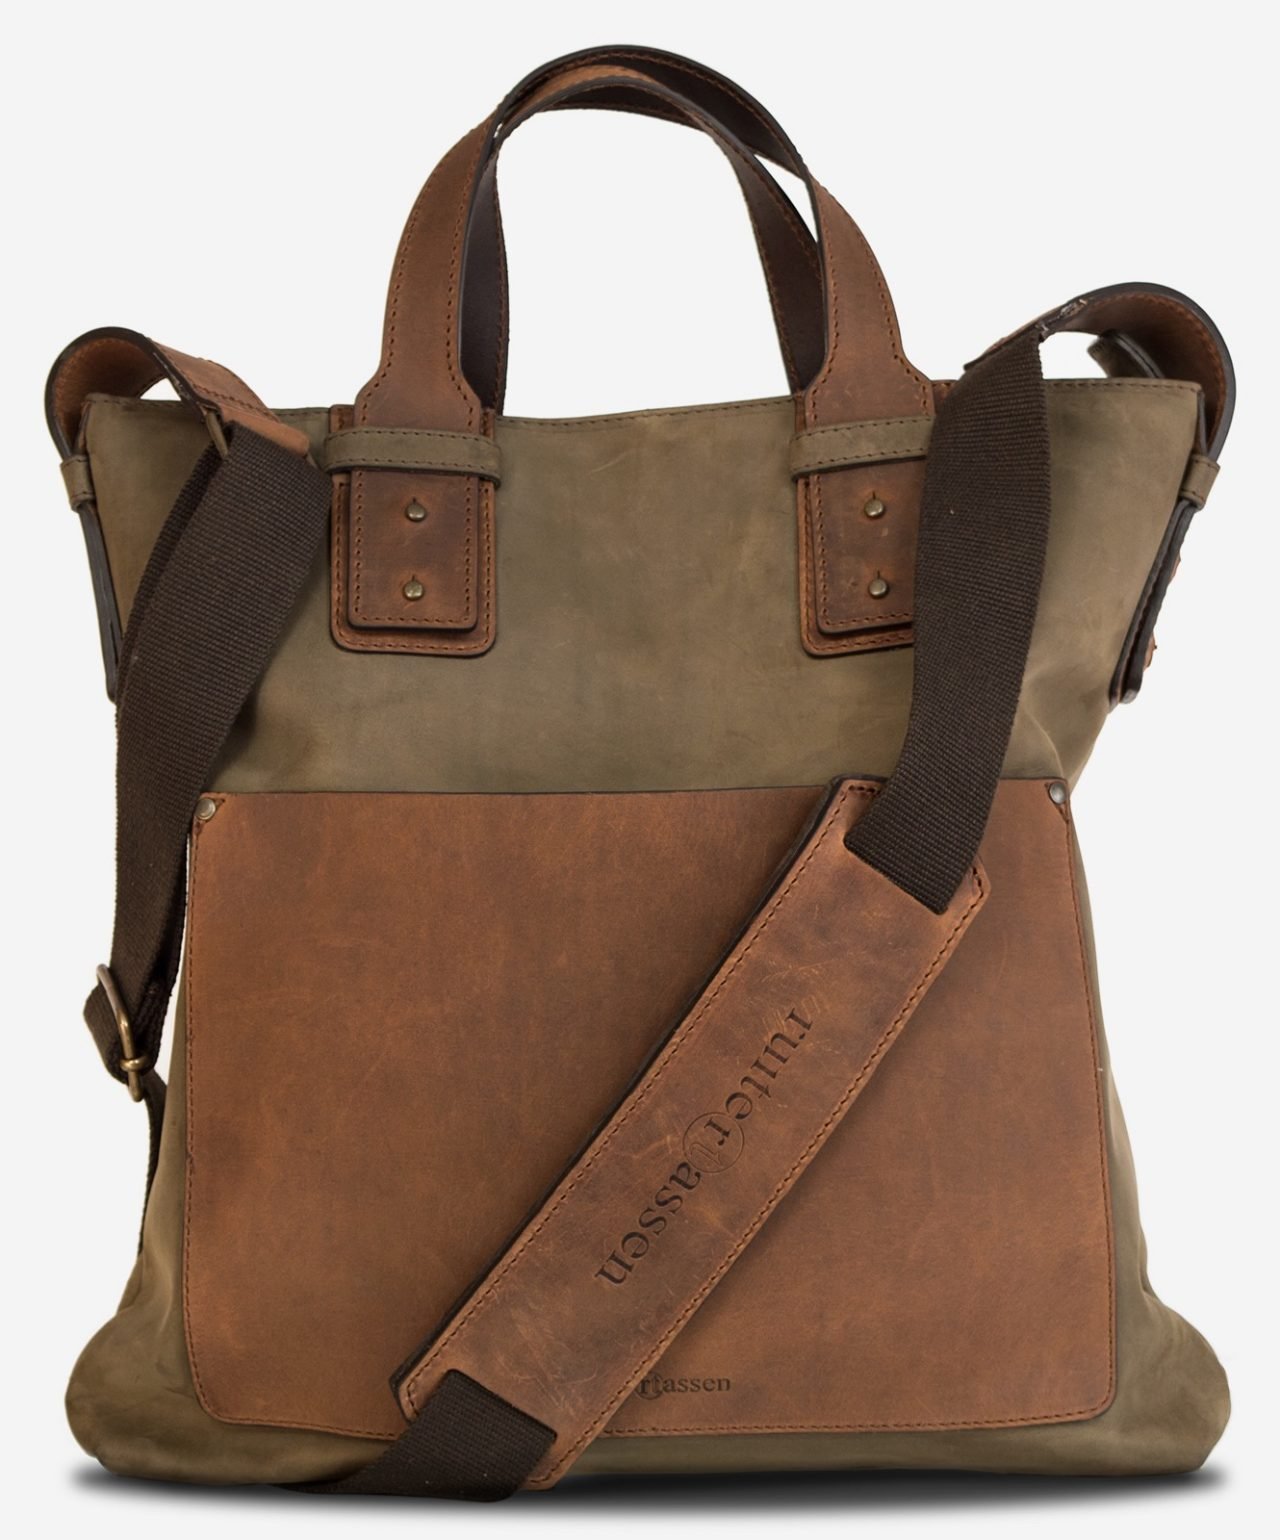 Front view of the rugged soft leather handbag for men with shoulder belt.